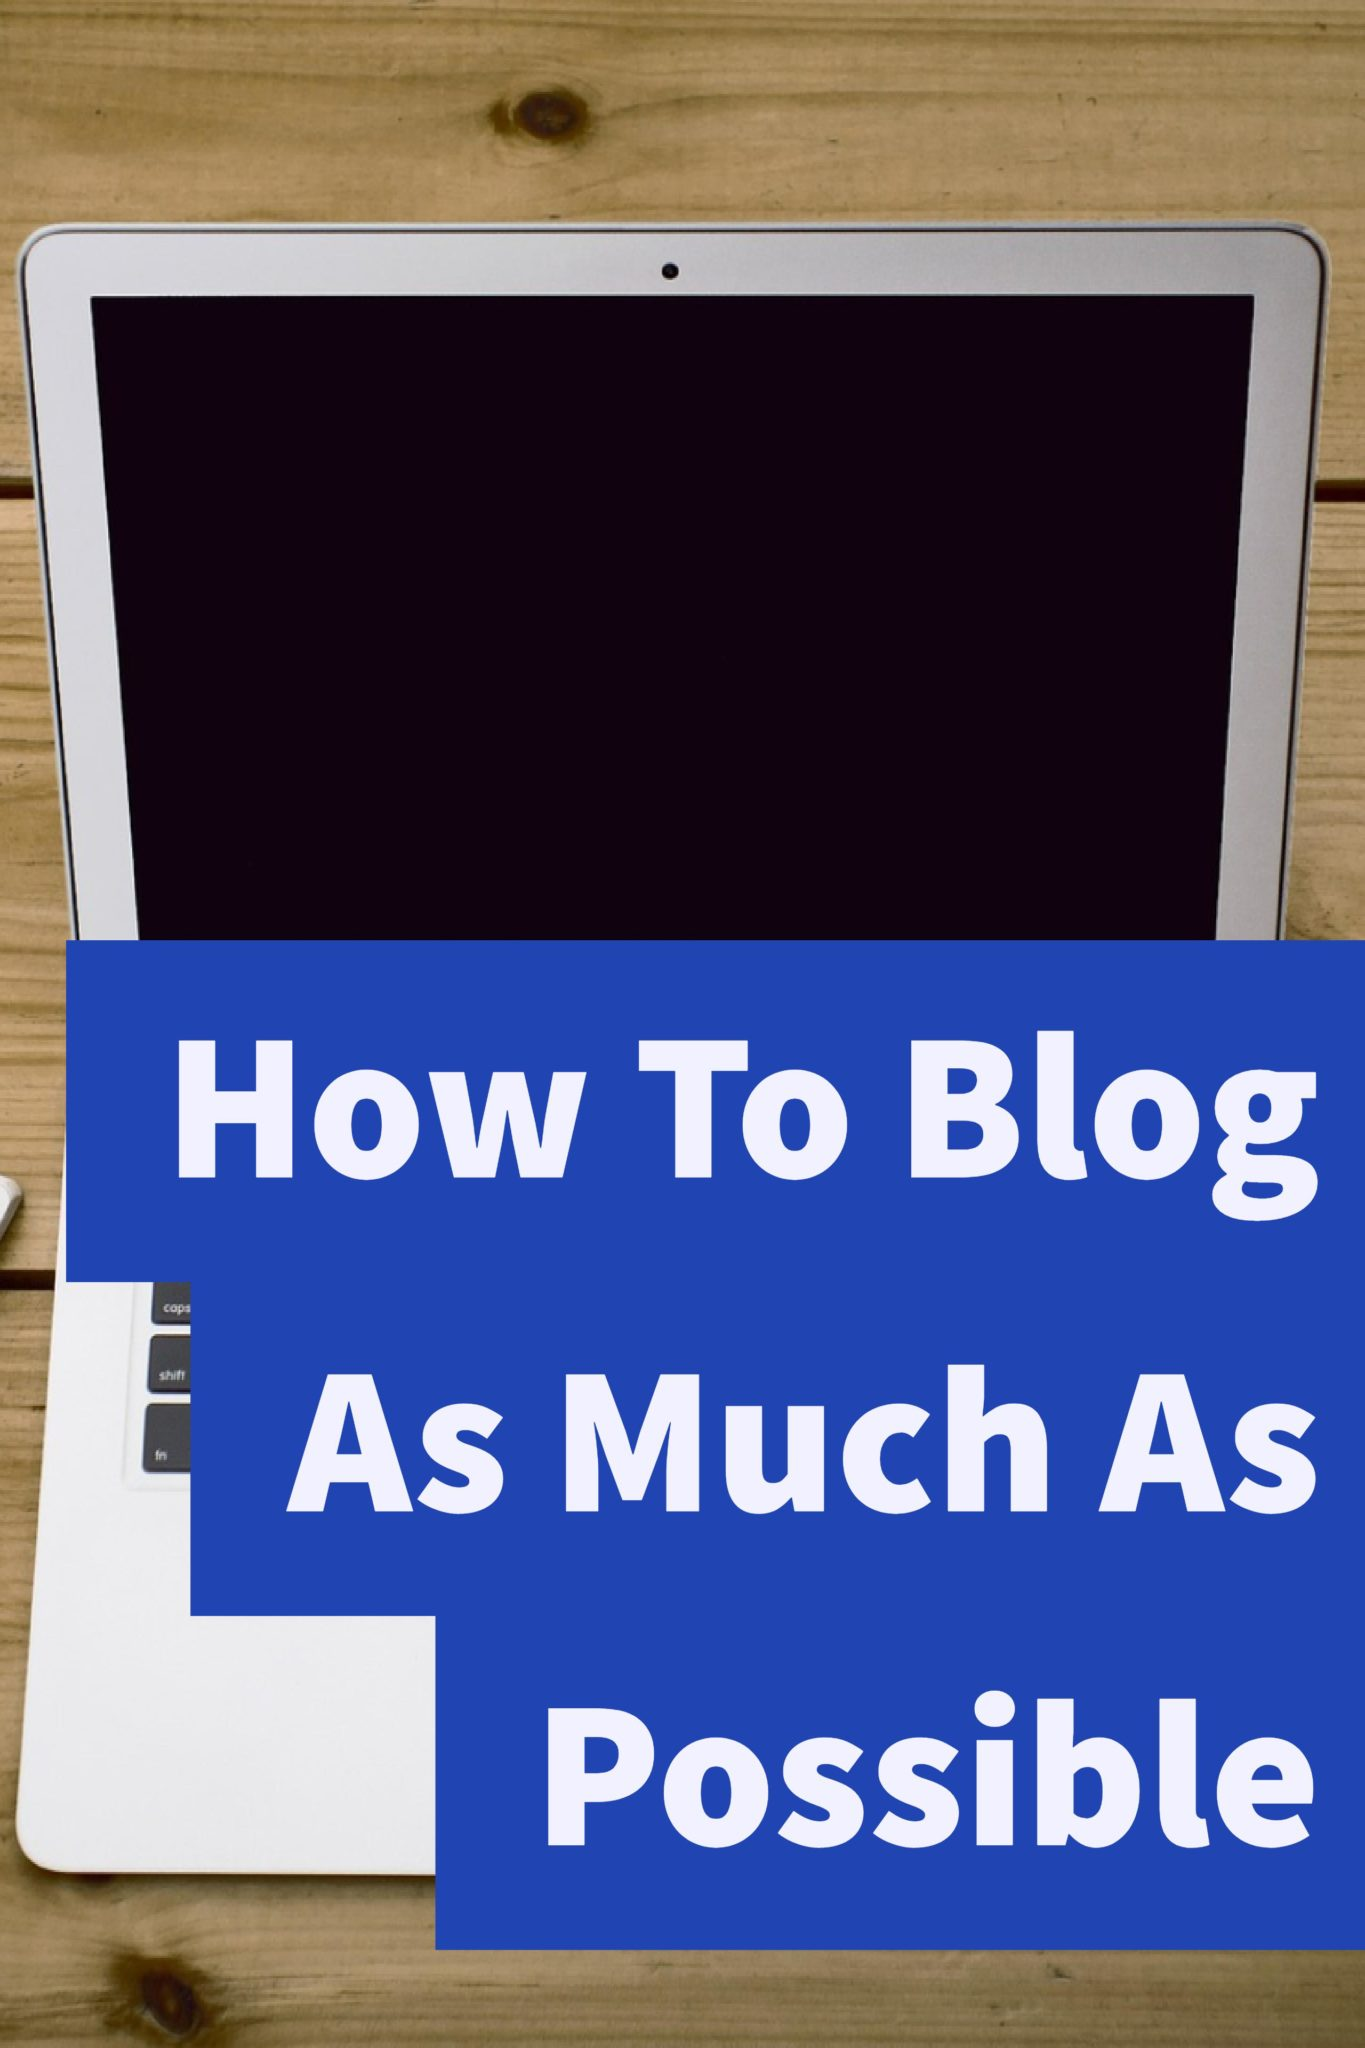 Blogging is a great way to increase your exposure and enable people to know you. Having said that, you want to blog as much as possible, but you might not know what to do. Click through to learn some ways to blog as much as possible!